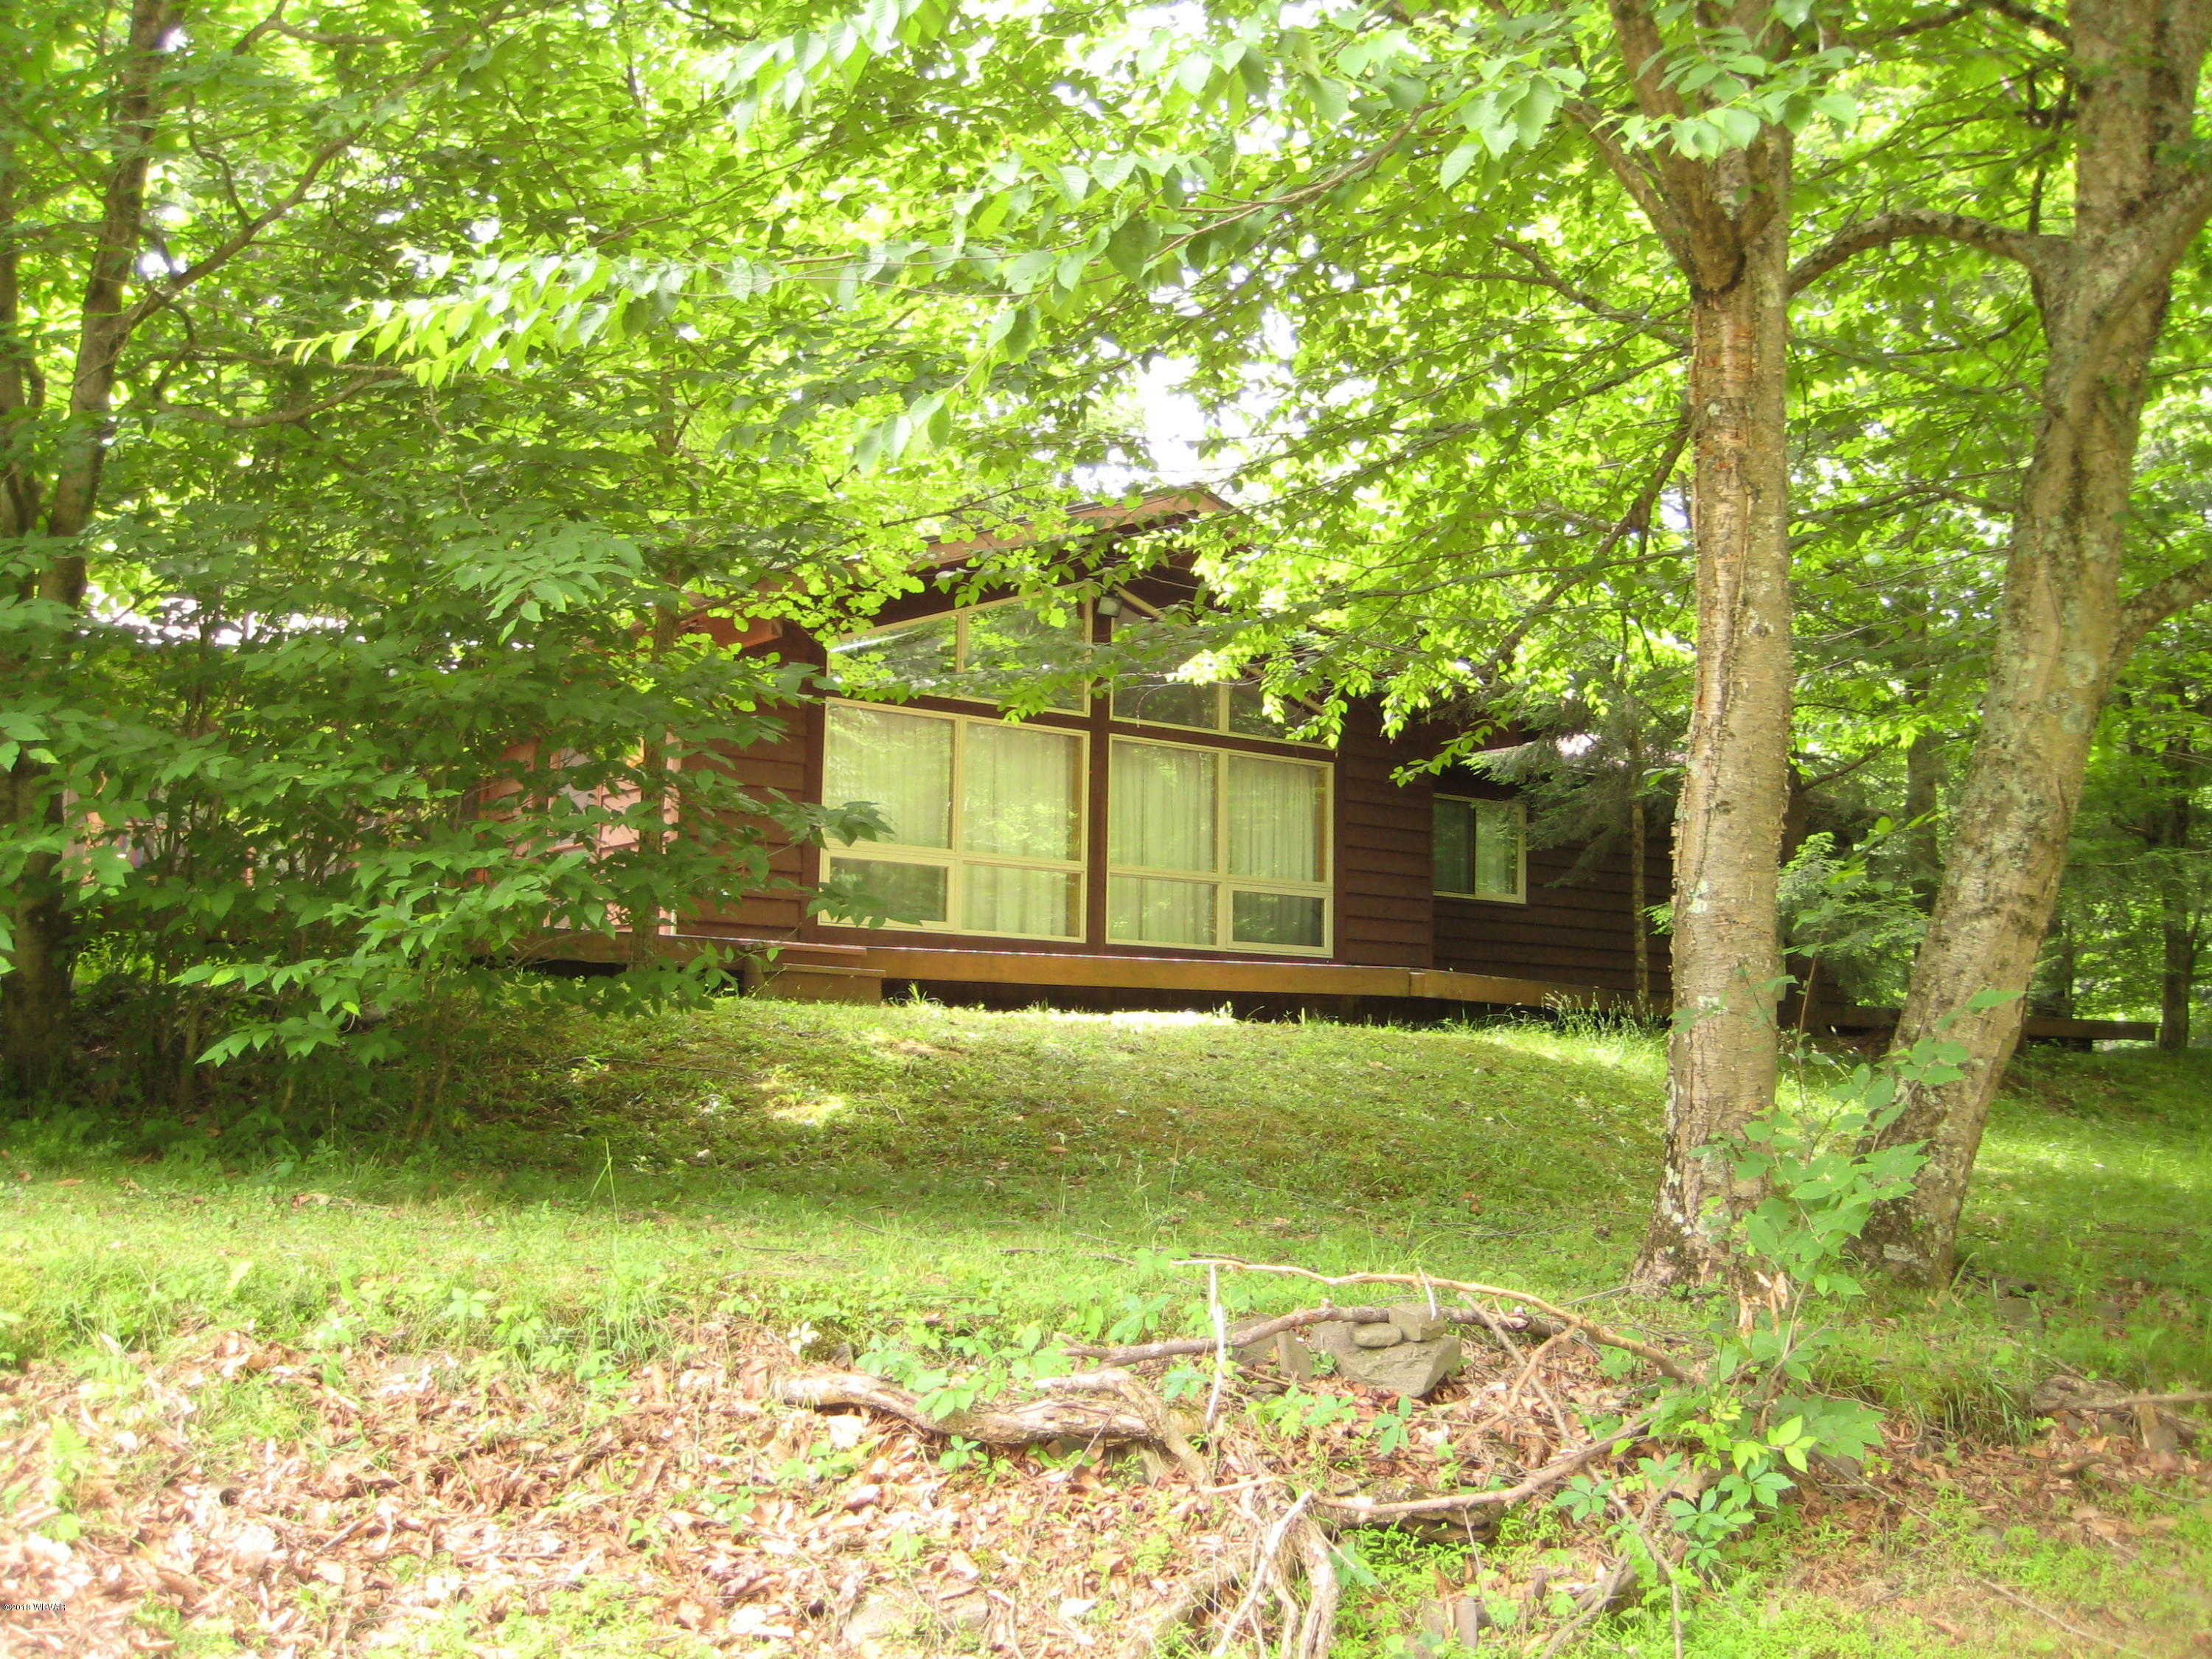 9407 87 ROUTE,Dushore,PA 18614,3 Bedrooms Bedrooms,1 BathroomBathrooms,Residential,87,WB-84499